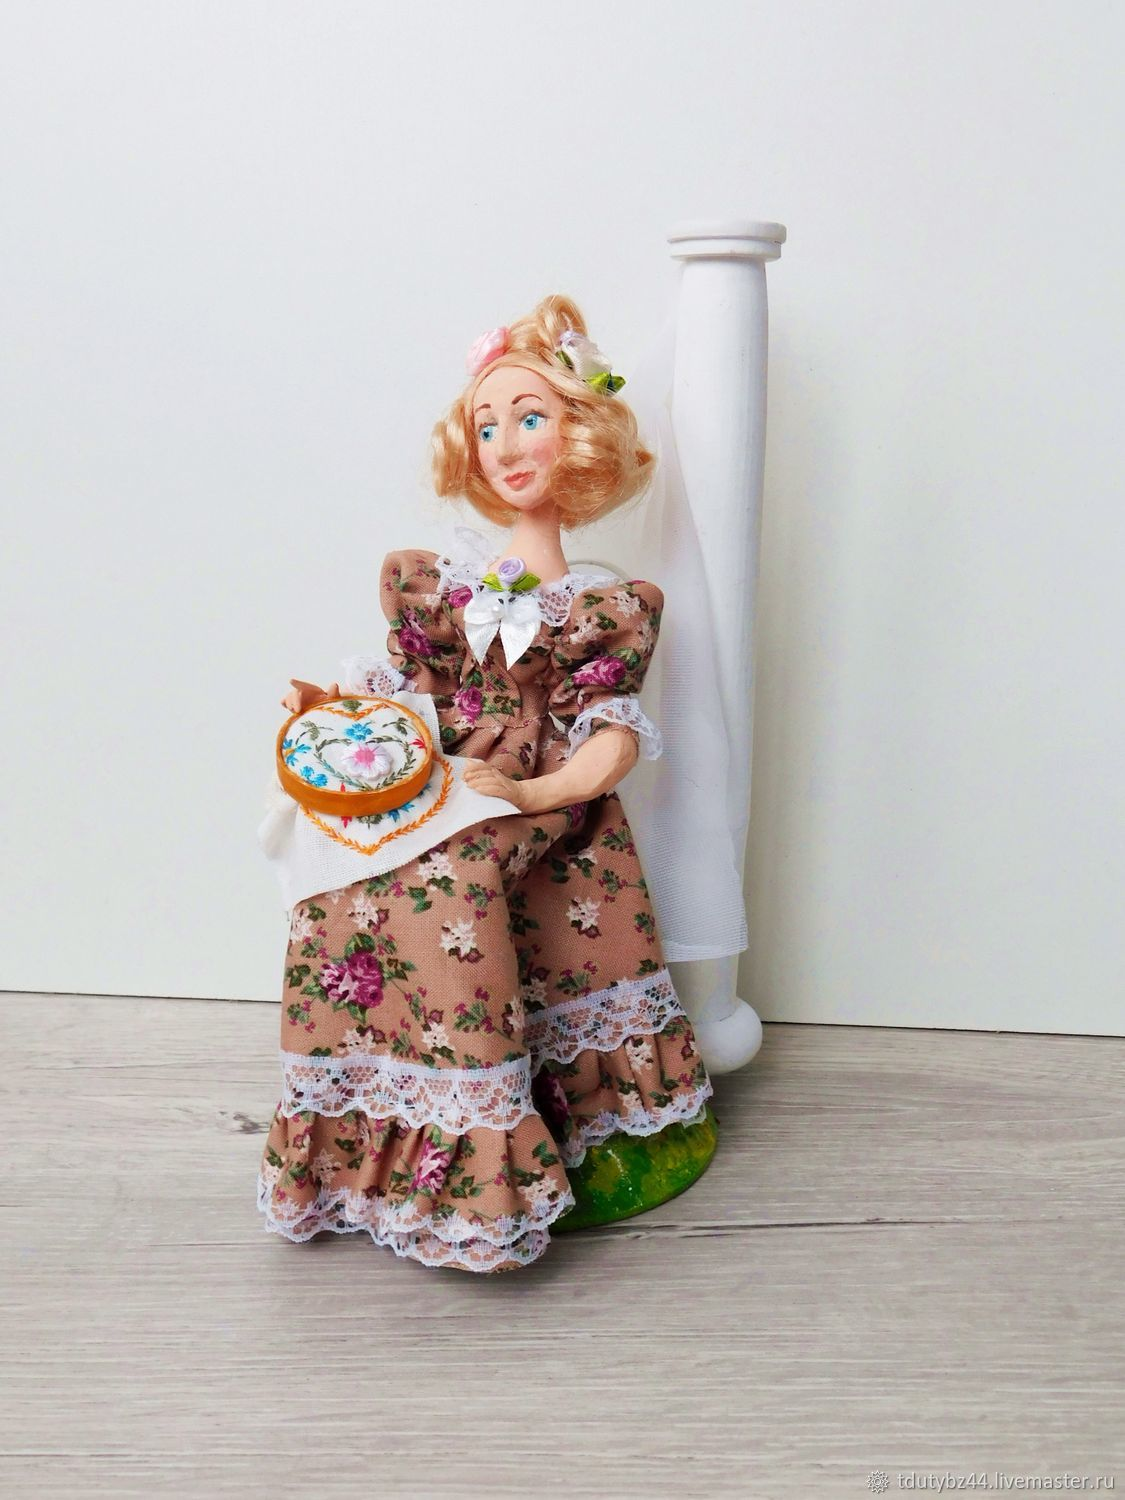 Author's doll EMBROIDERER collectible doll author, Dolls, Moscow,  Фото №1